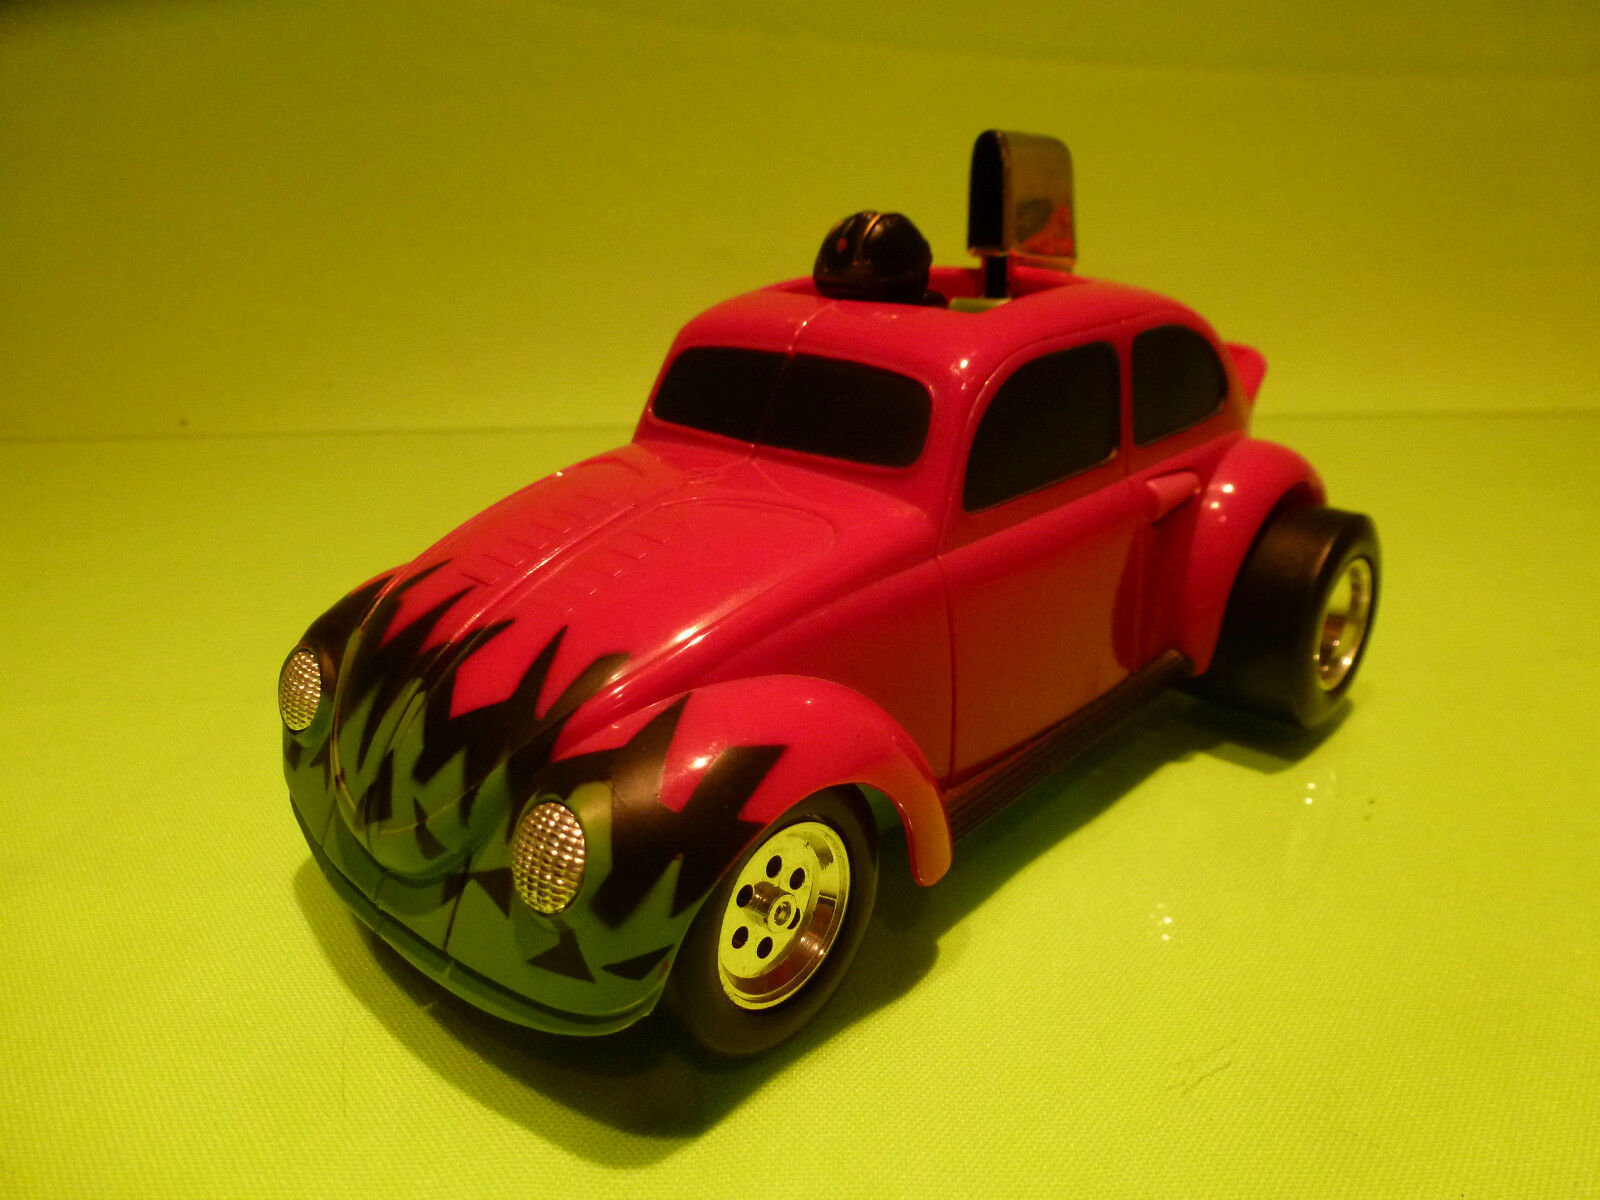 PLASTIC VW VOLKSWAGEN KAFER BEETLE - TRANSFORMERS M.A.S.K - EXTREMELY RARE